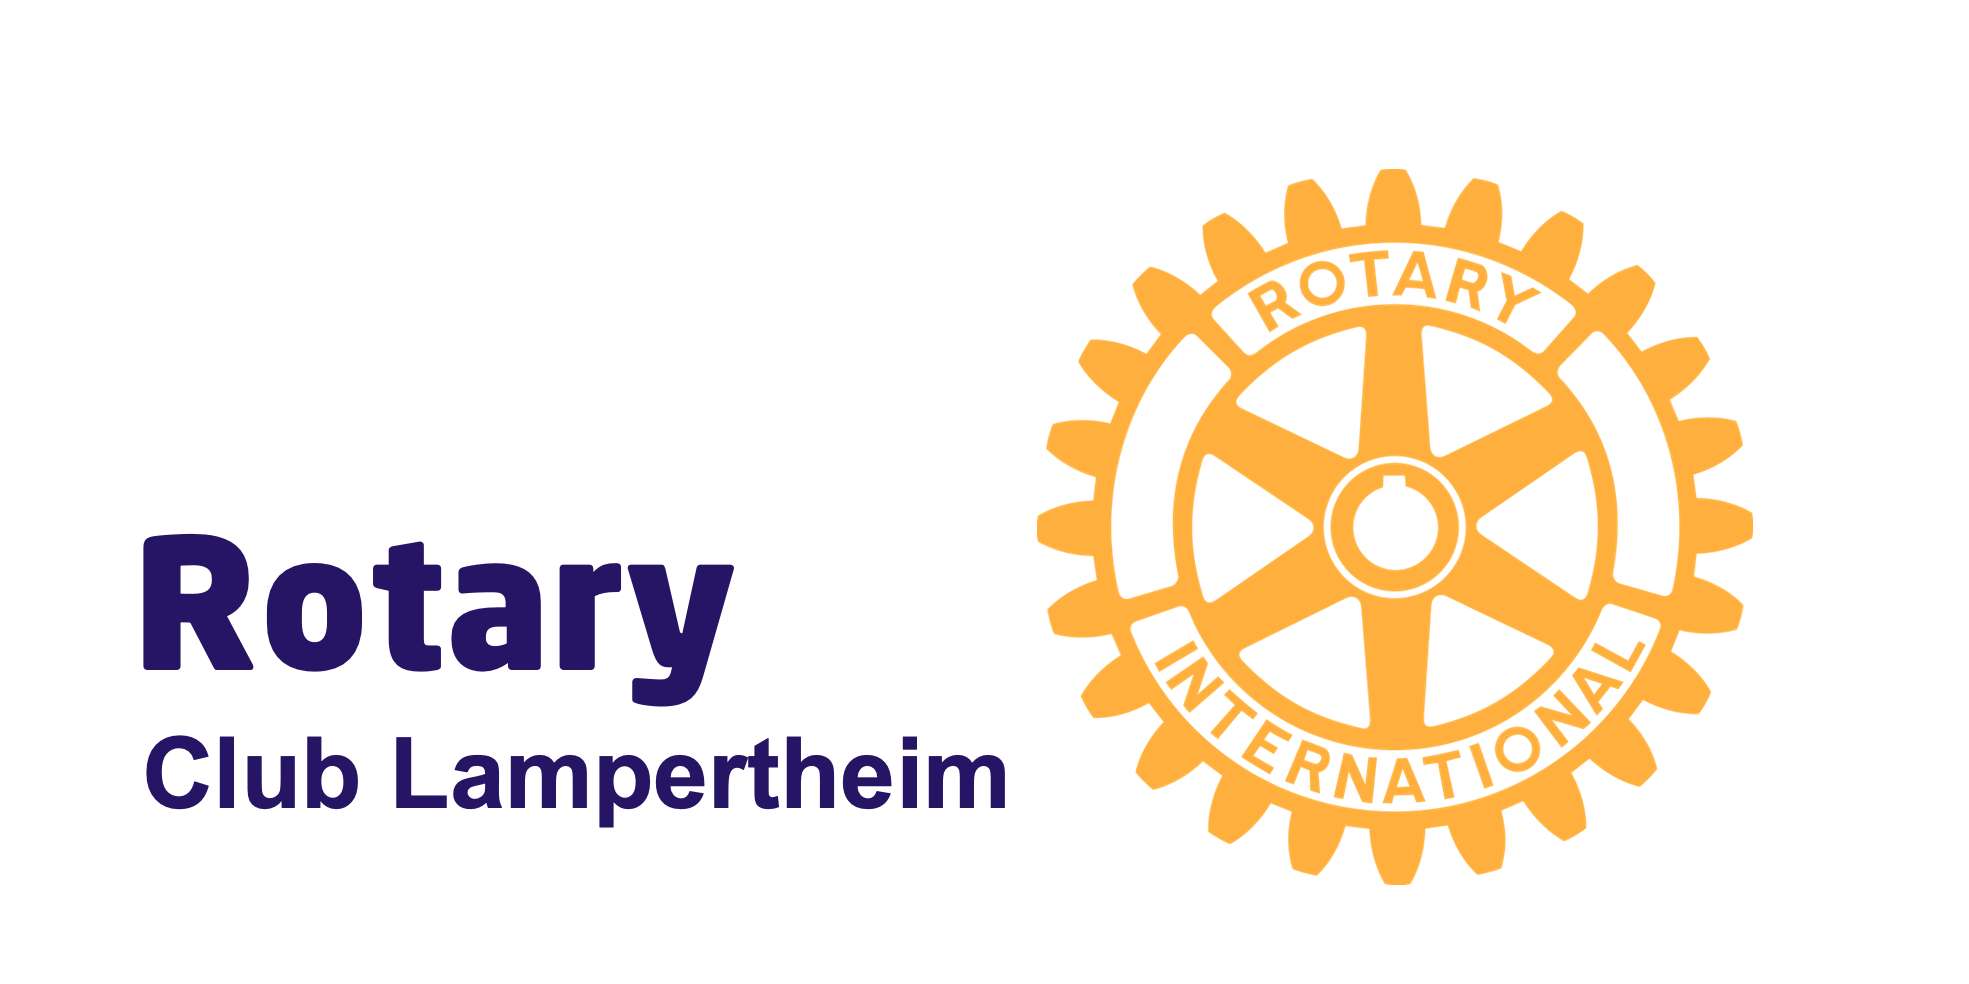 Rotary Club Lampertheim